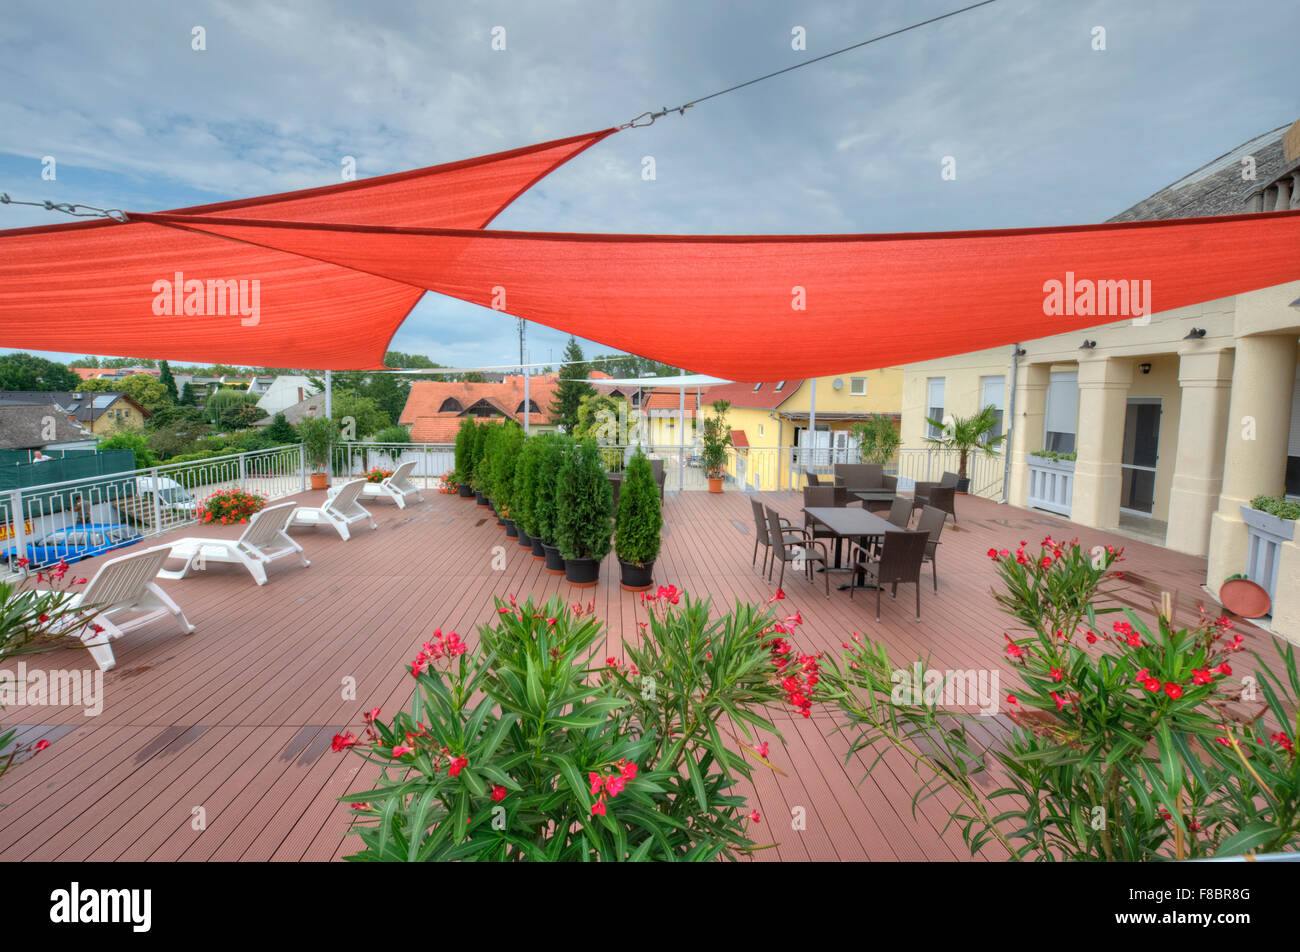 Terrace in summer with shade sails, flowers and deck chairs Stock Photo